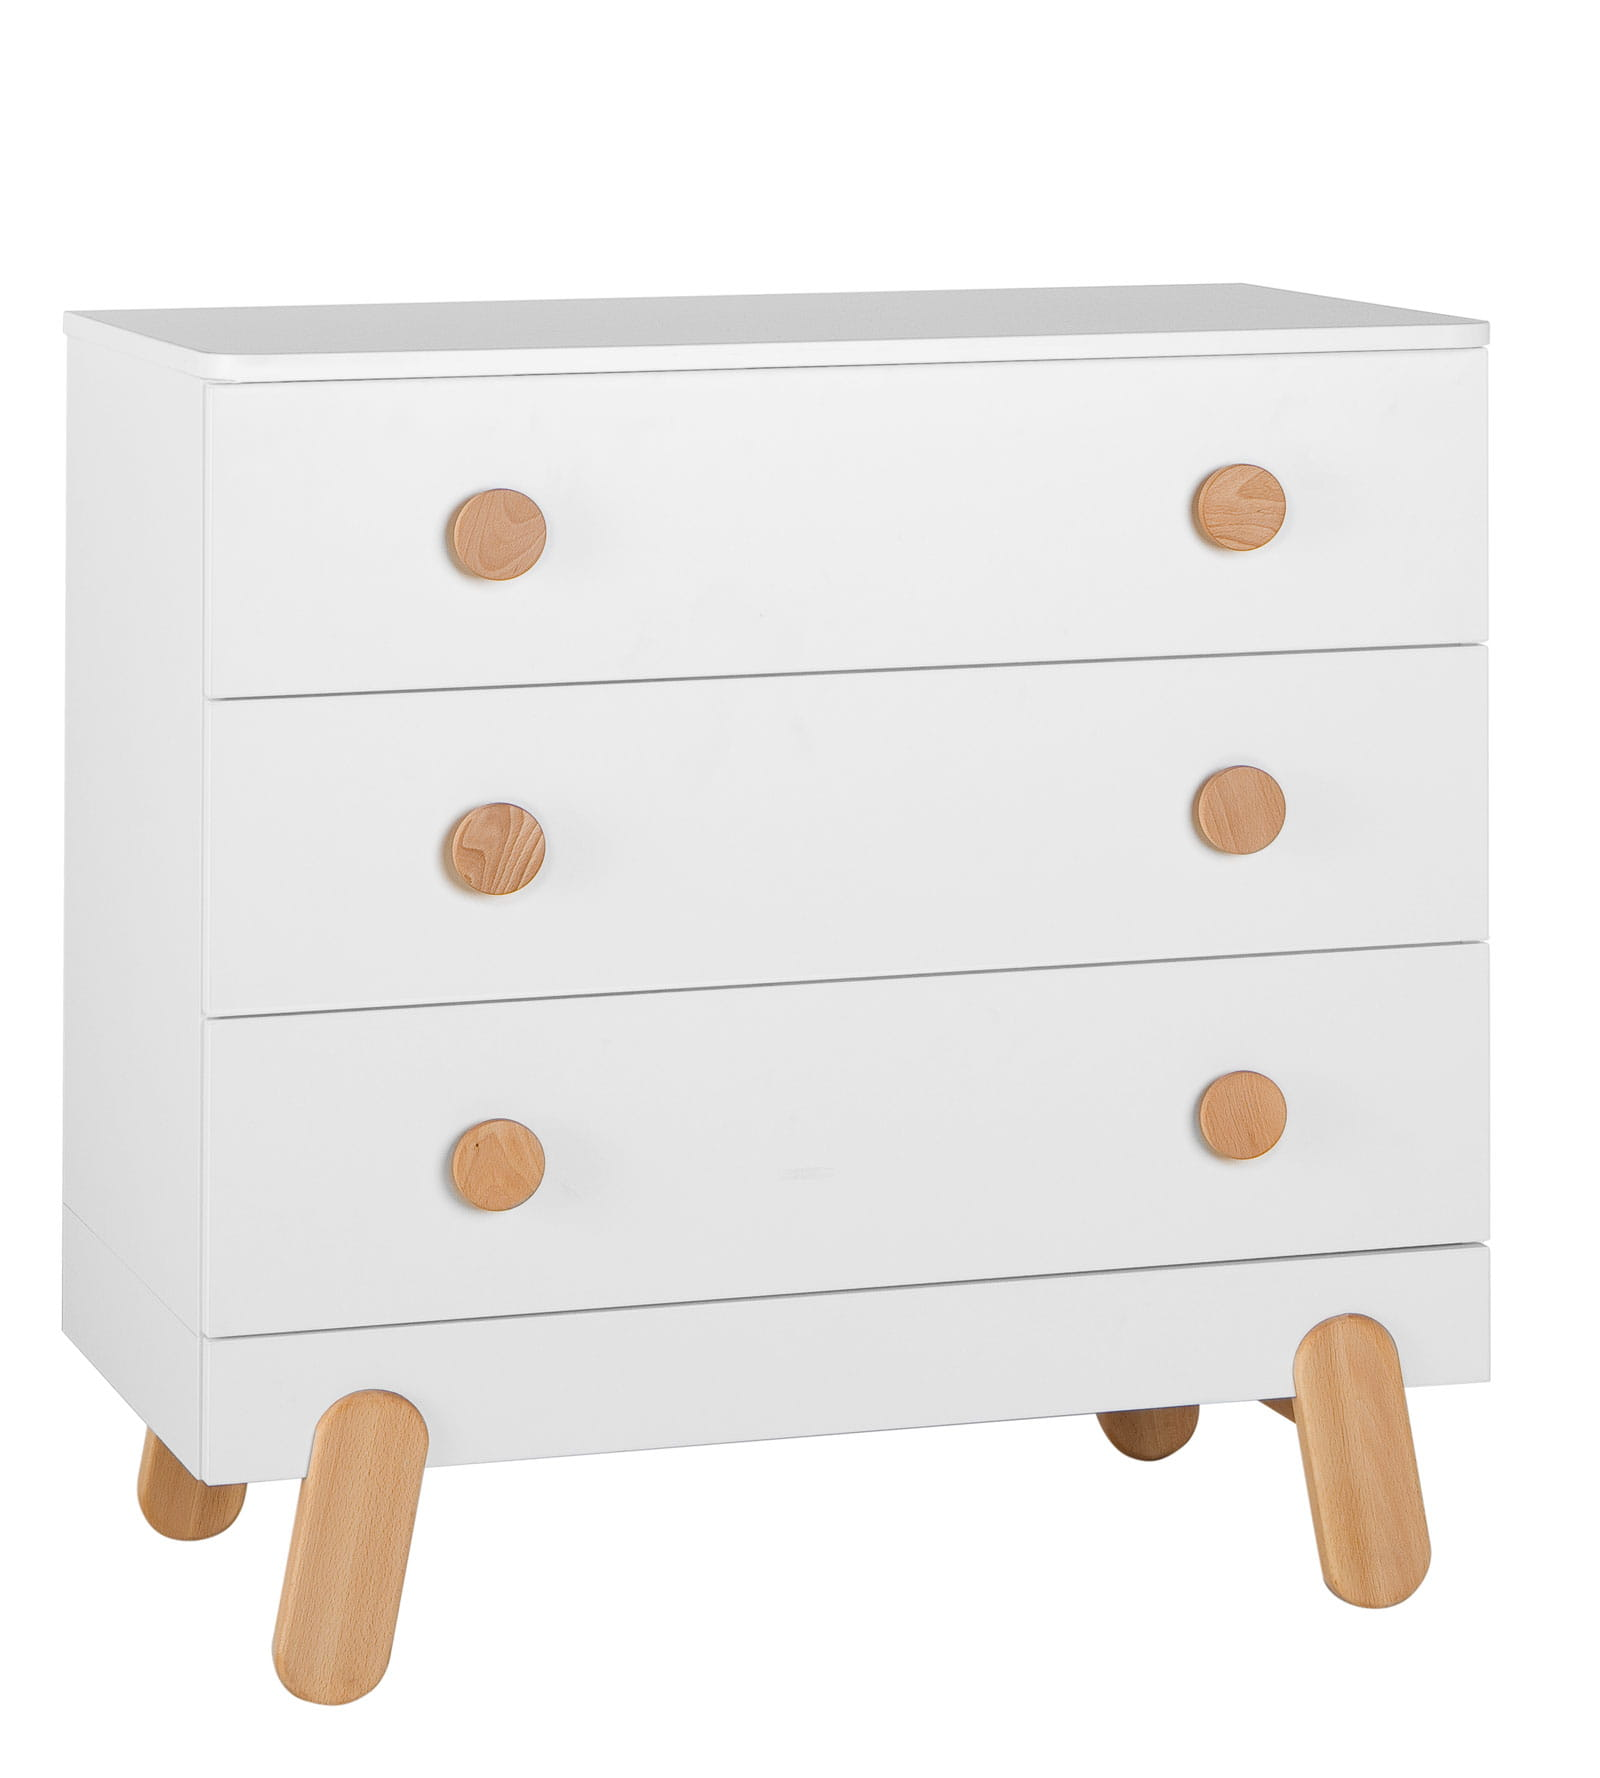 3 drawer chest.jpg